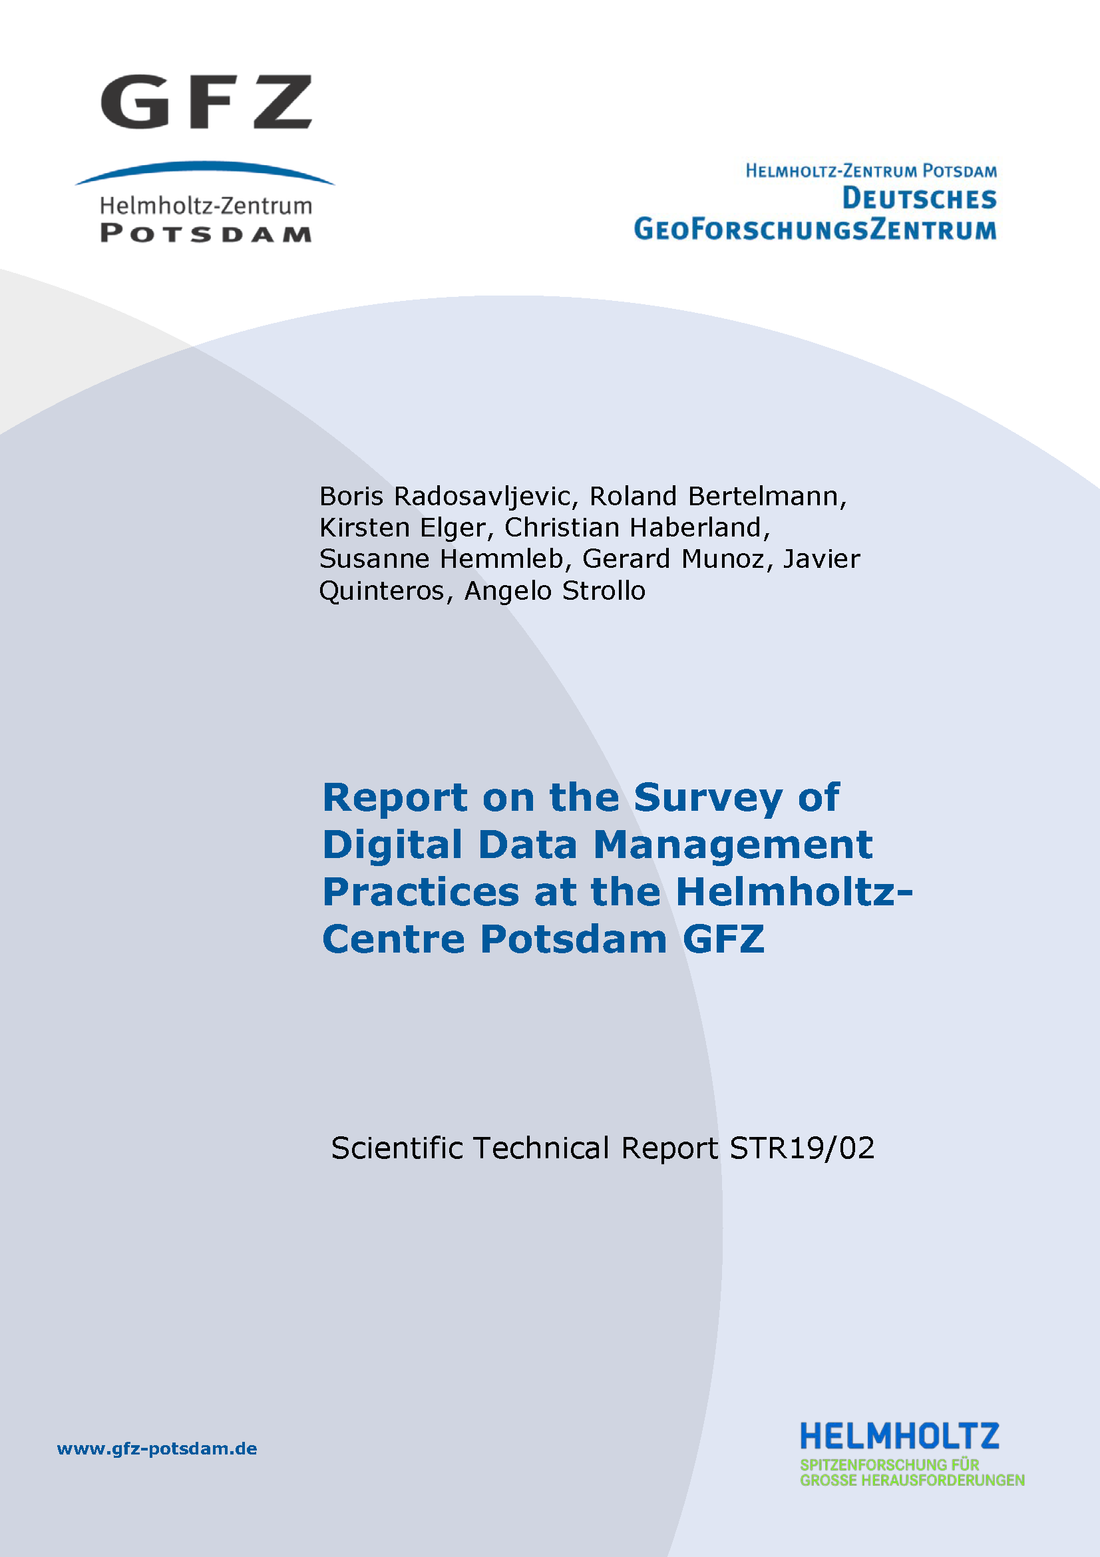 Cover eines Scientific Technical Report